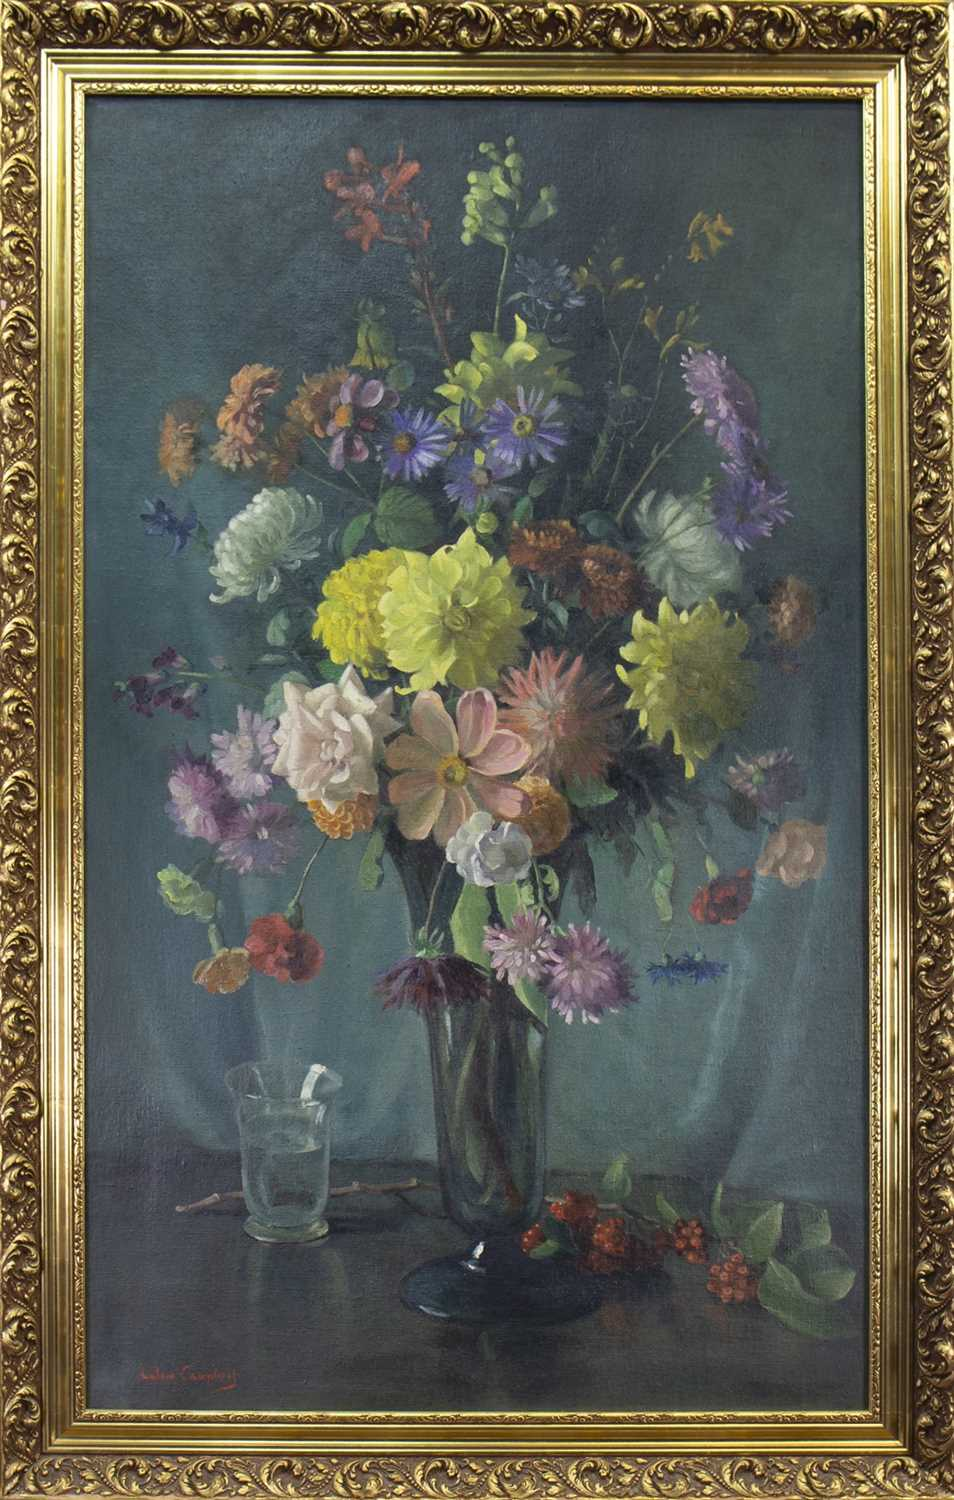 Lot 421-STILL LIFE, AN OIL BY COLIN CAMPBELL